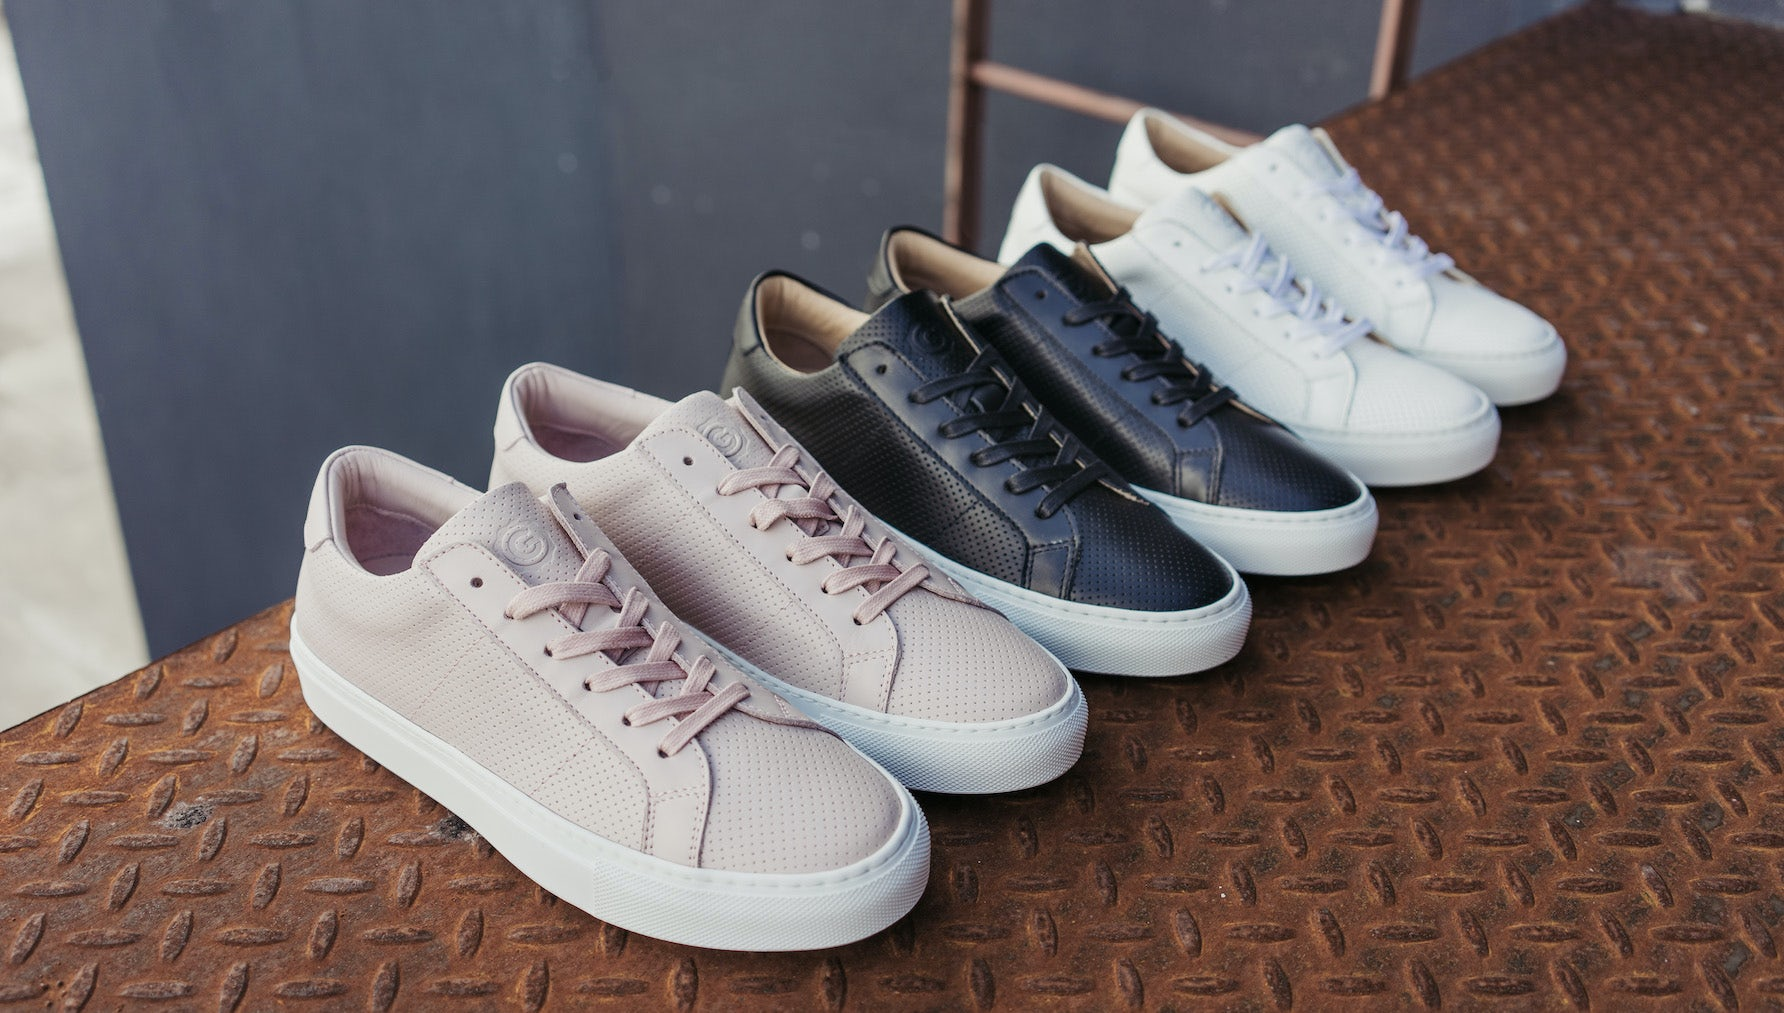 Disruptive Sneaker Brand Greats Partners with Nordstrom